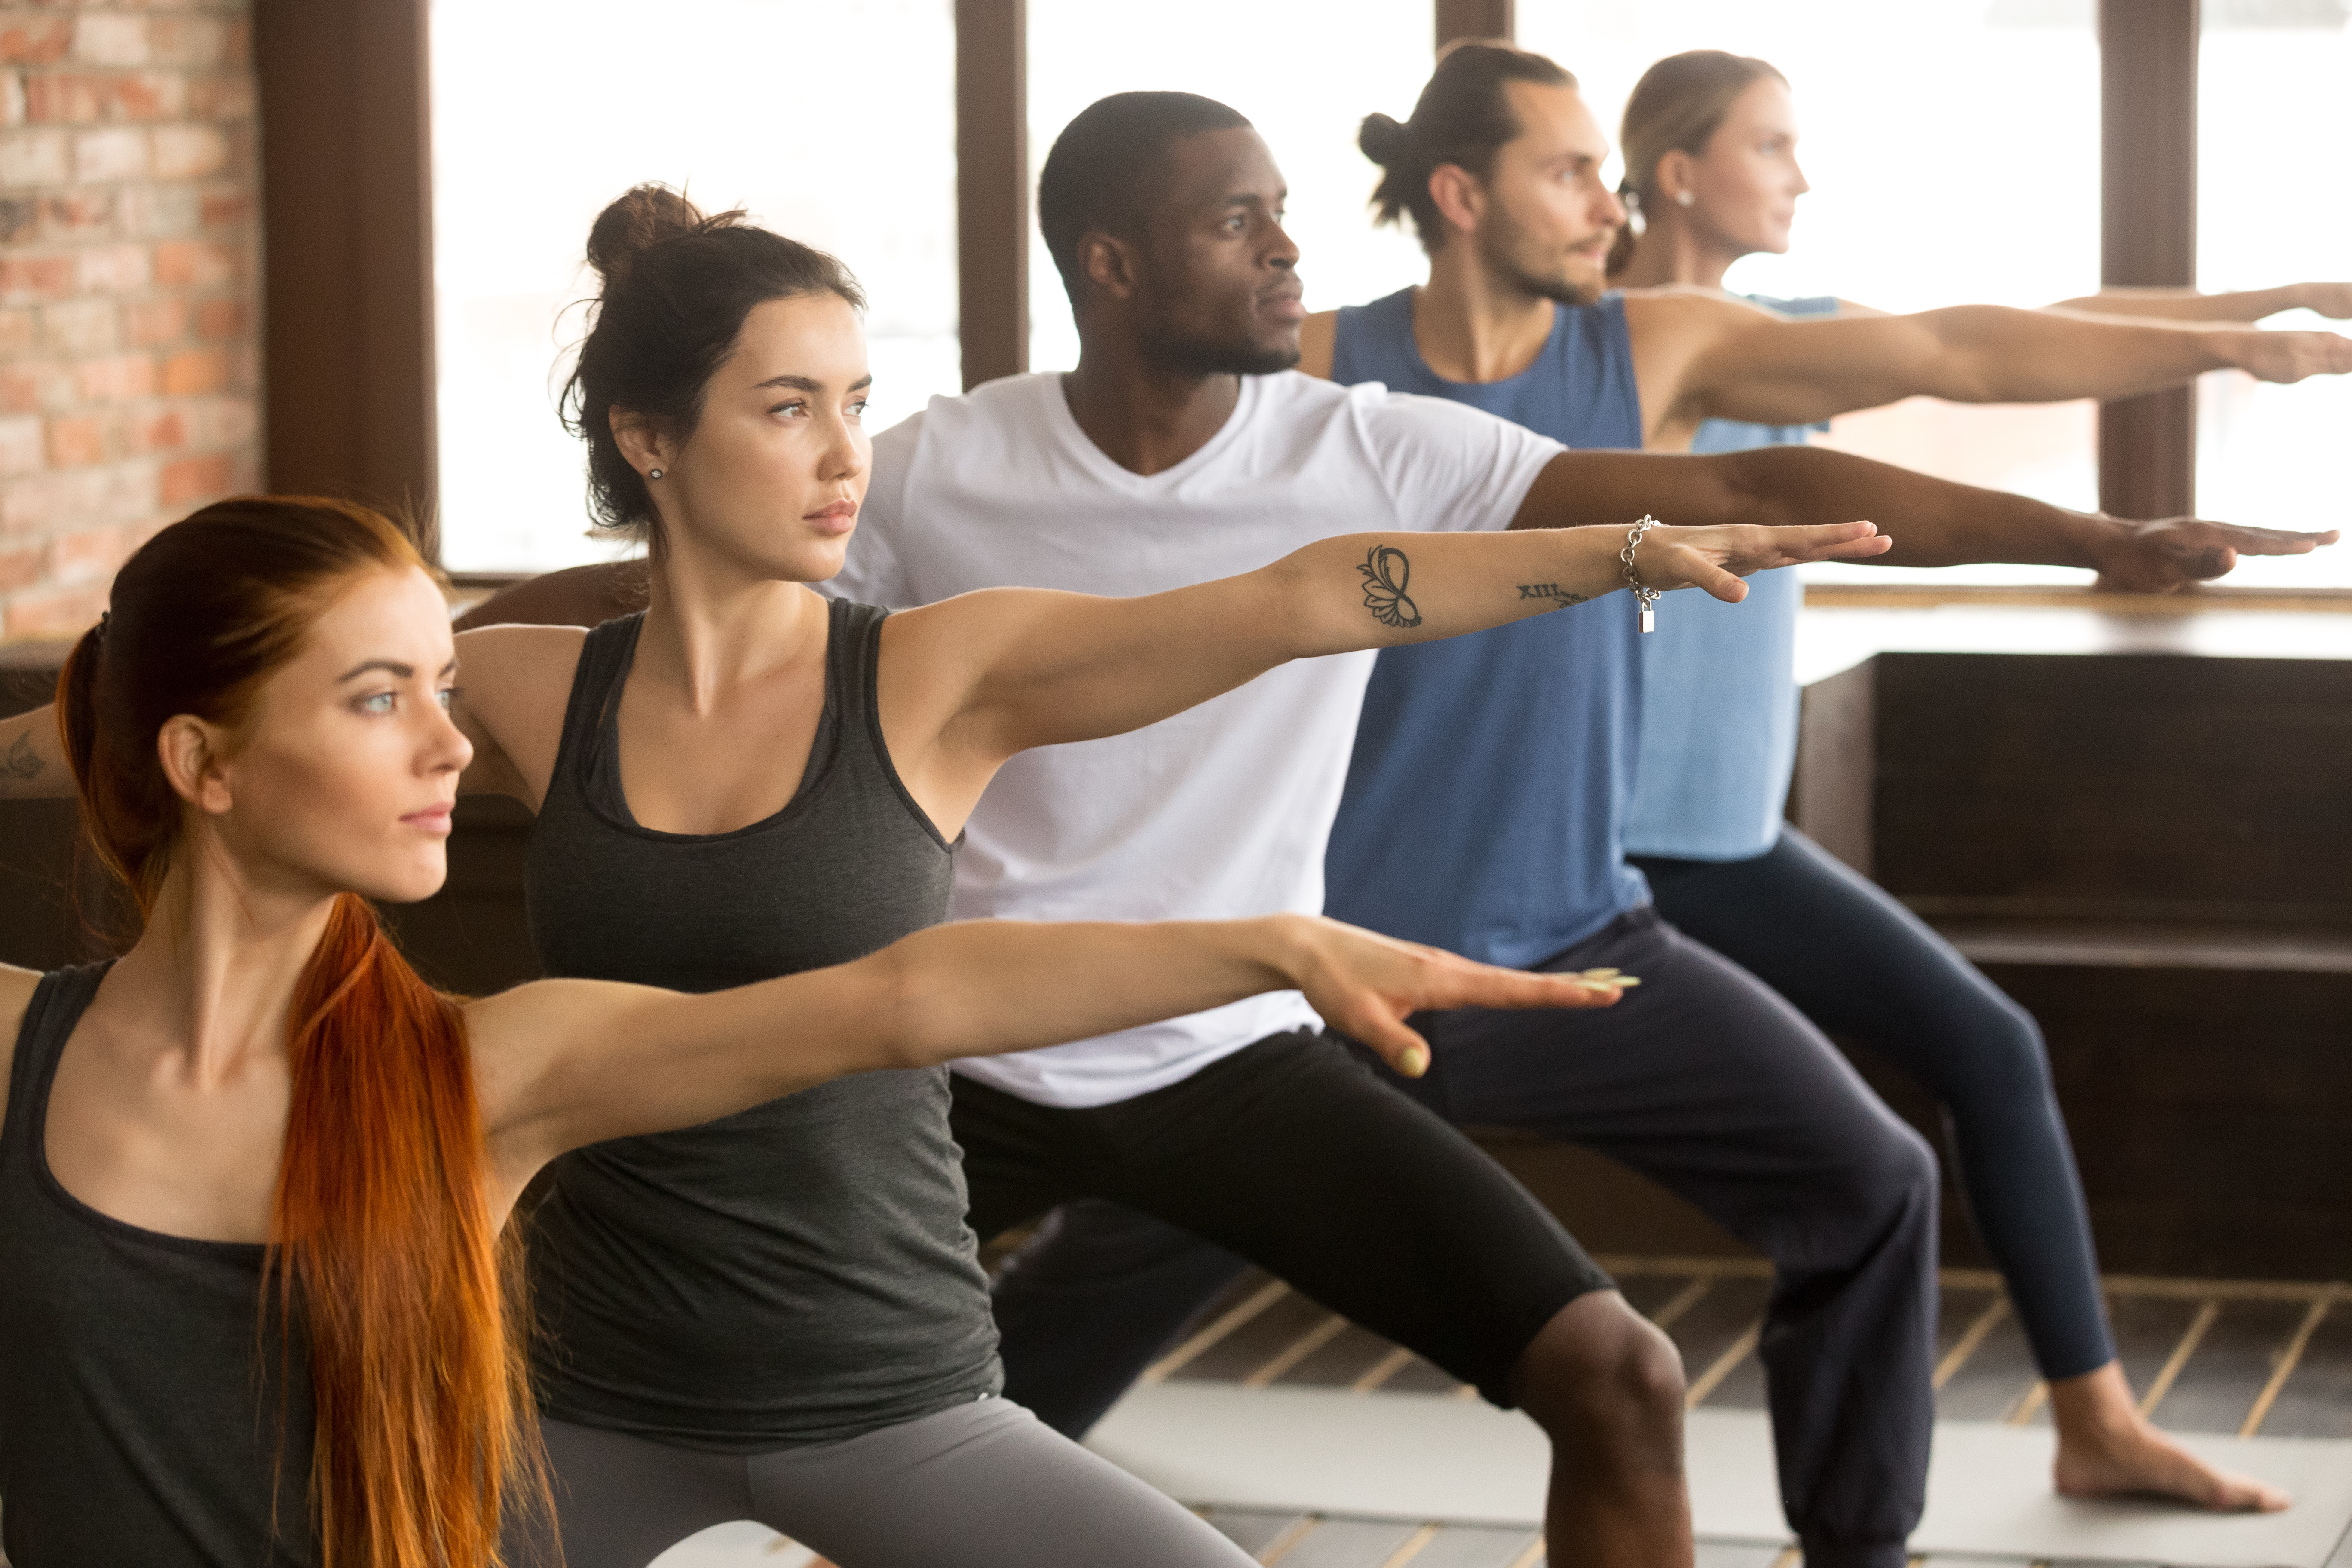 Diversity in yoga classes, weight diversity, gender diversity, racial diversity, cultural diversity in yoga, yoga and weight disorders